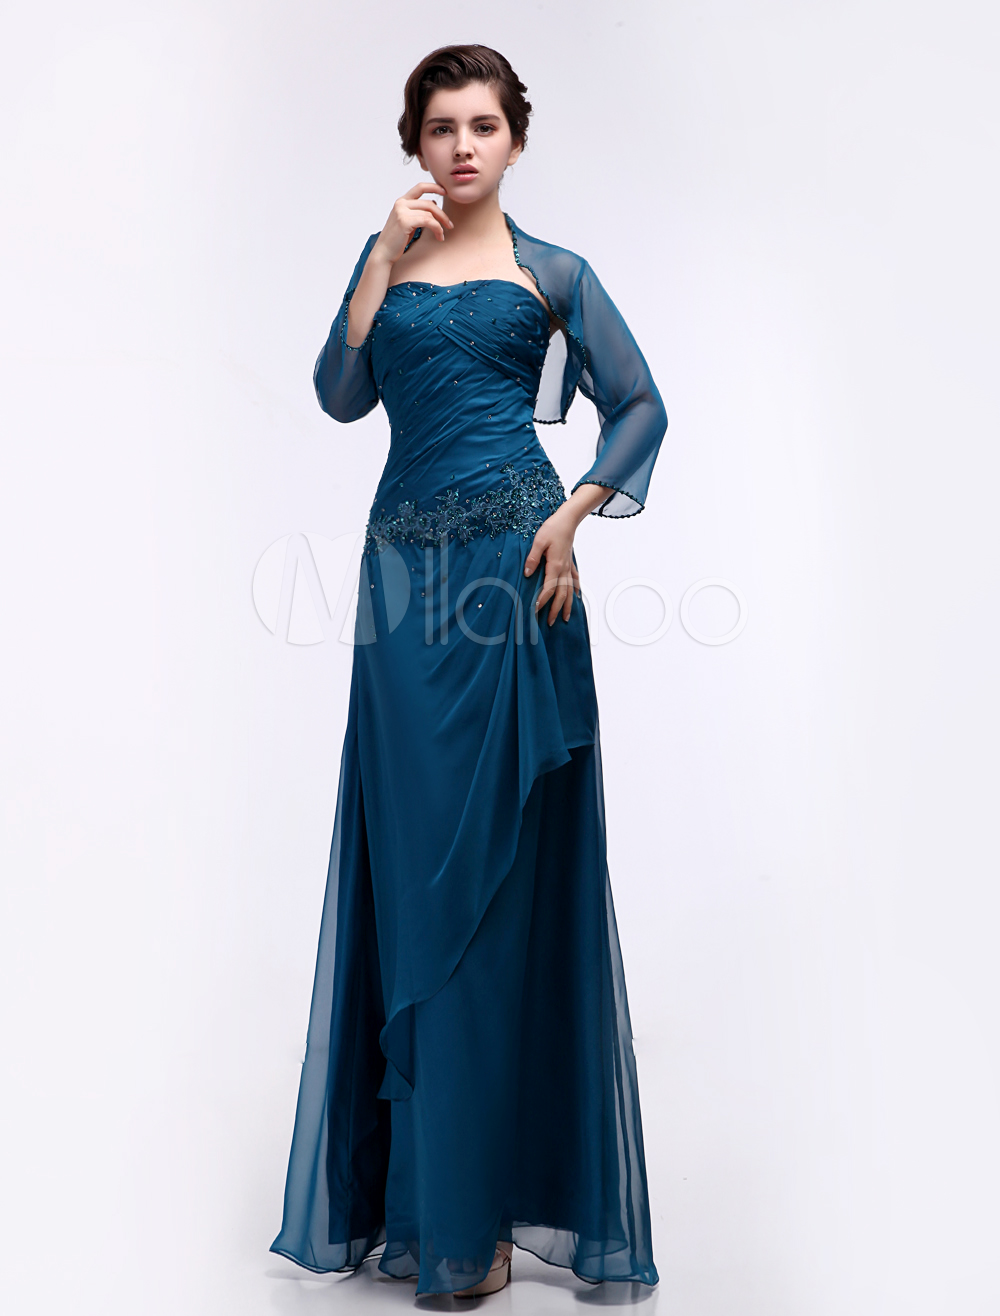 Buy Chiffon Evening Dress Ink Blue 2 Piece Mother Of The Bride Dress Sweetheart Beaded Pleated Floor Length Party Dress for $136.79 in Milanoo store